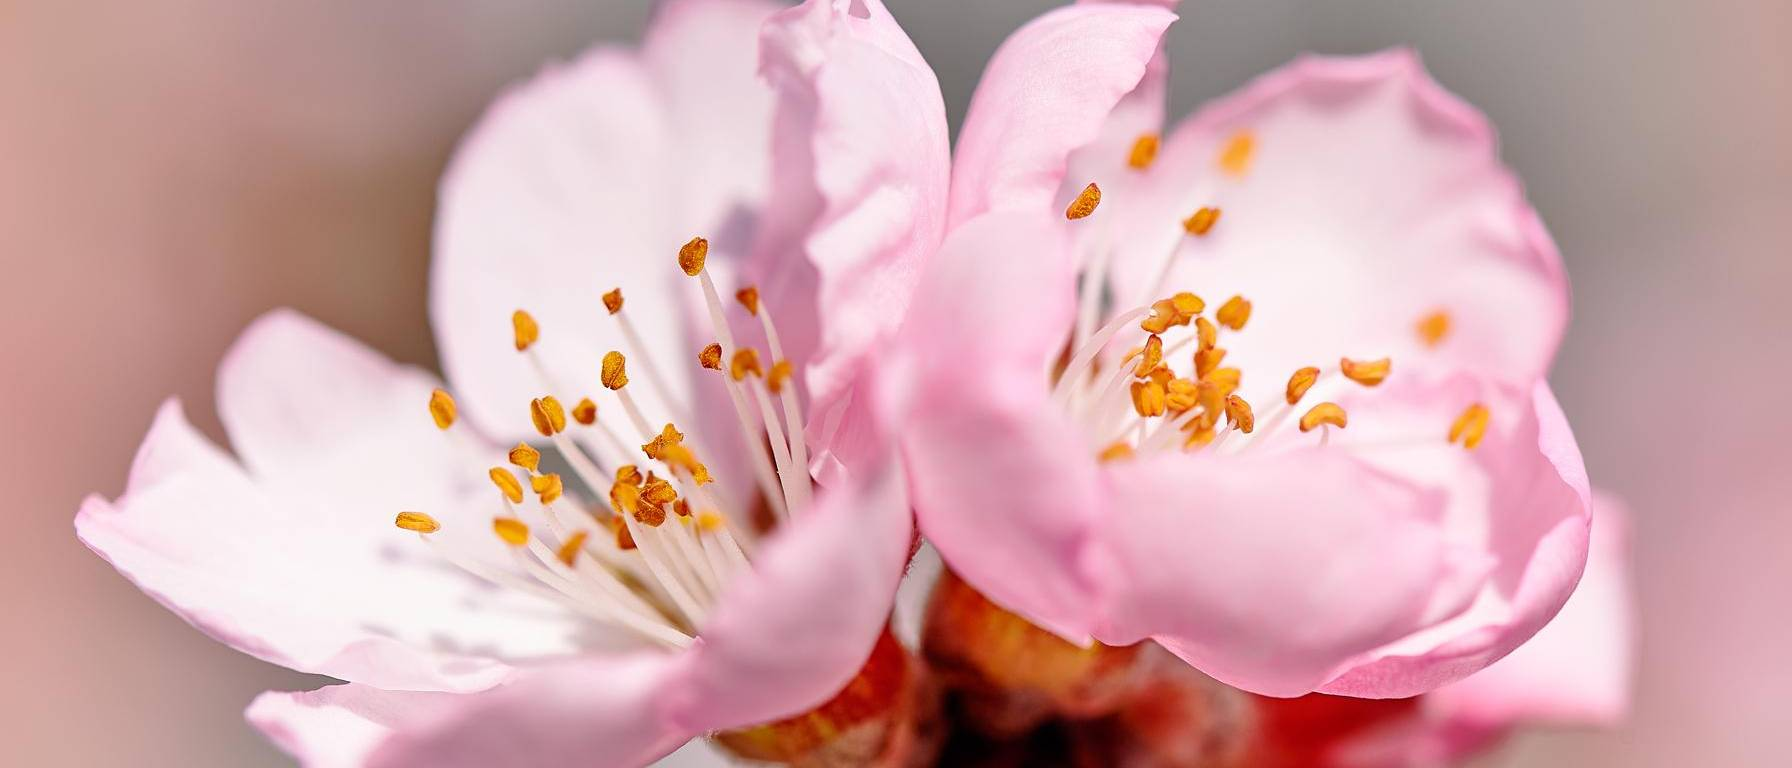 Image of almond petals